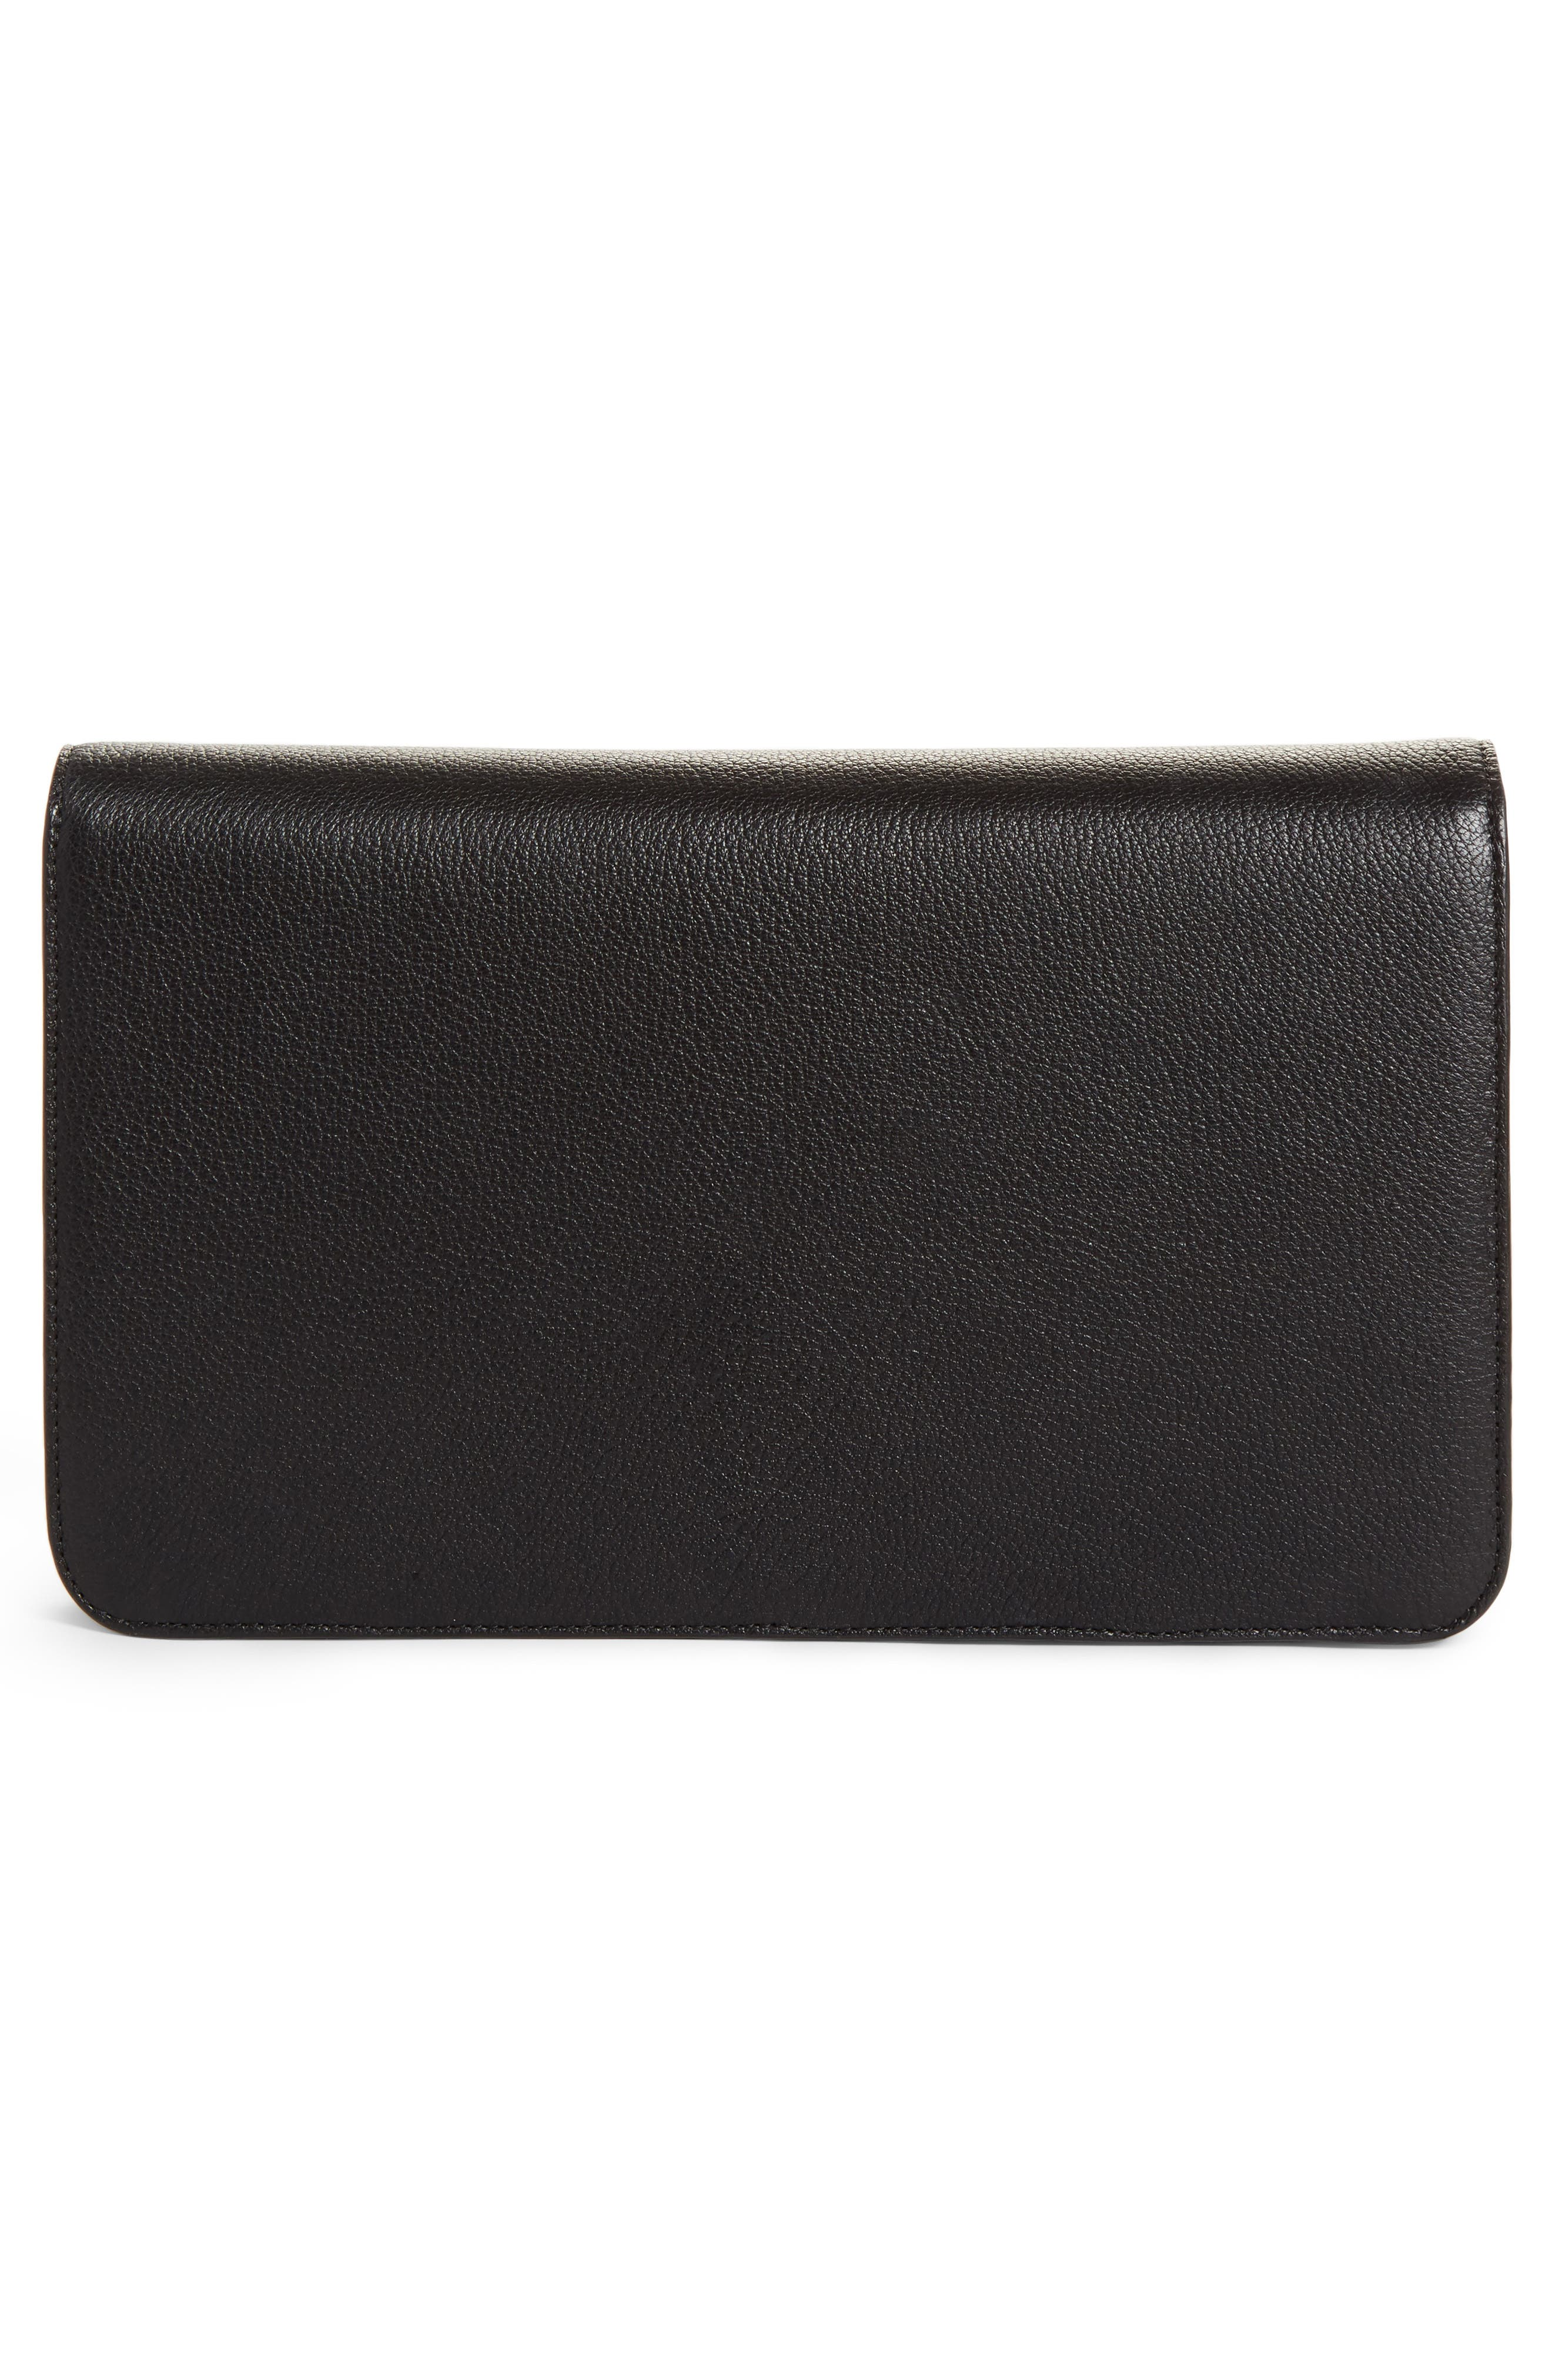 Heart Leather Clutch,                             Alternate thumbnail 3, color,                             001